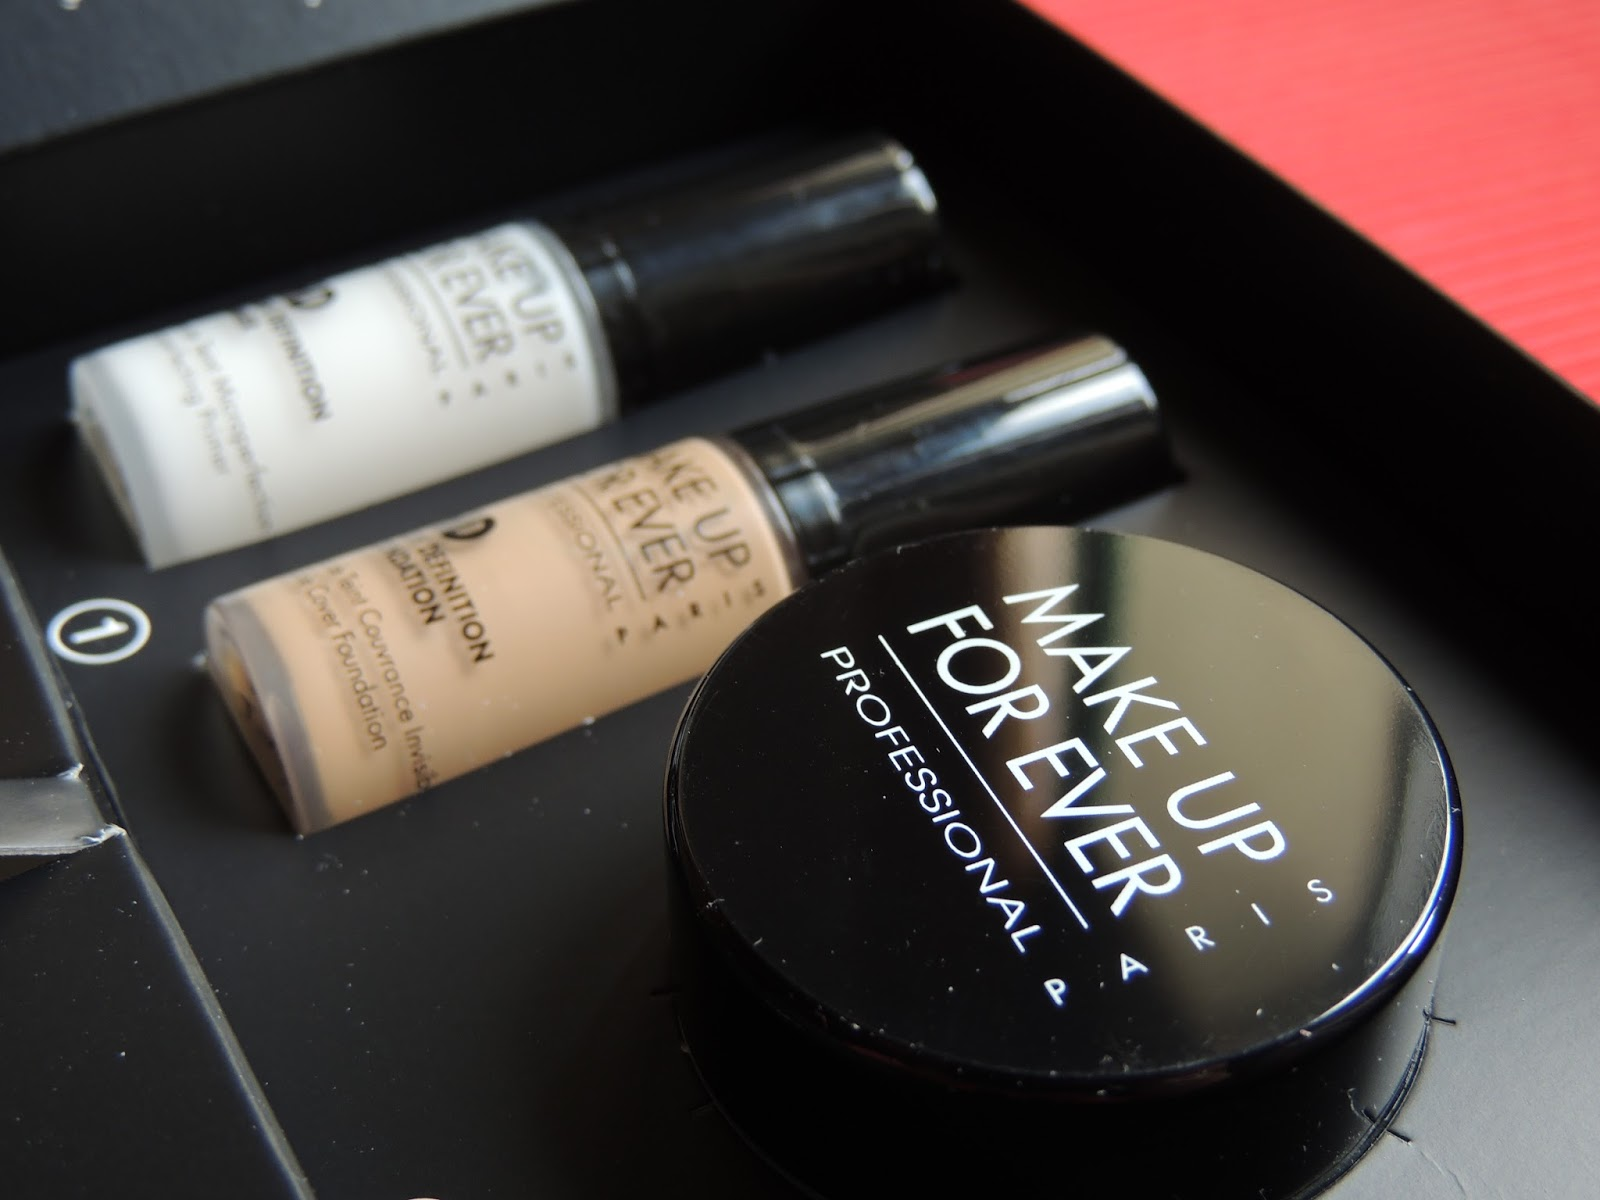 Kit Pro Secret de MAKE UP FOREVER